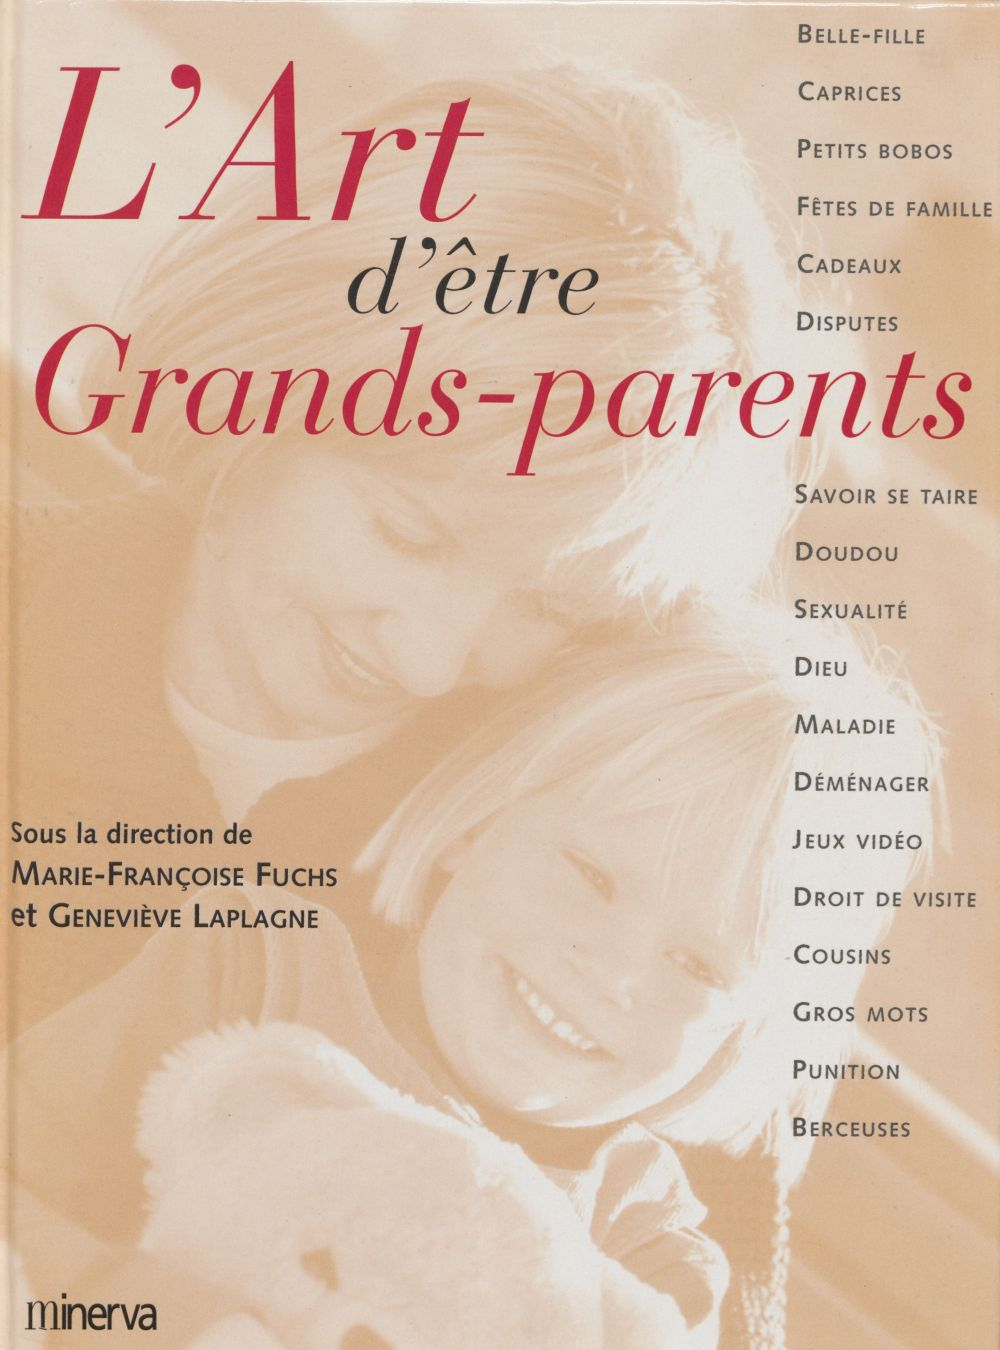 L'art d'etre grands-parents